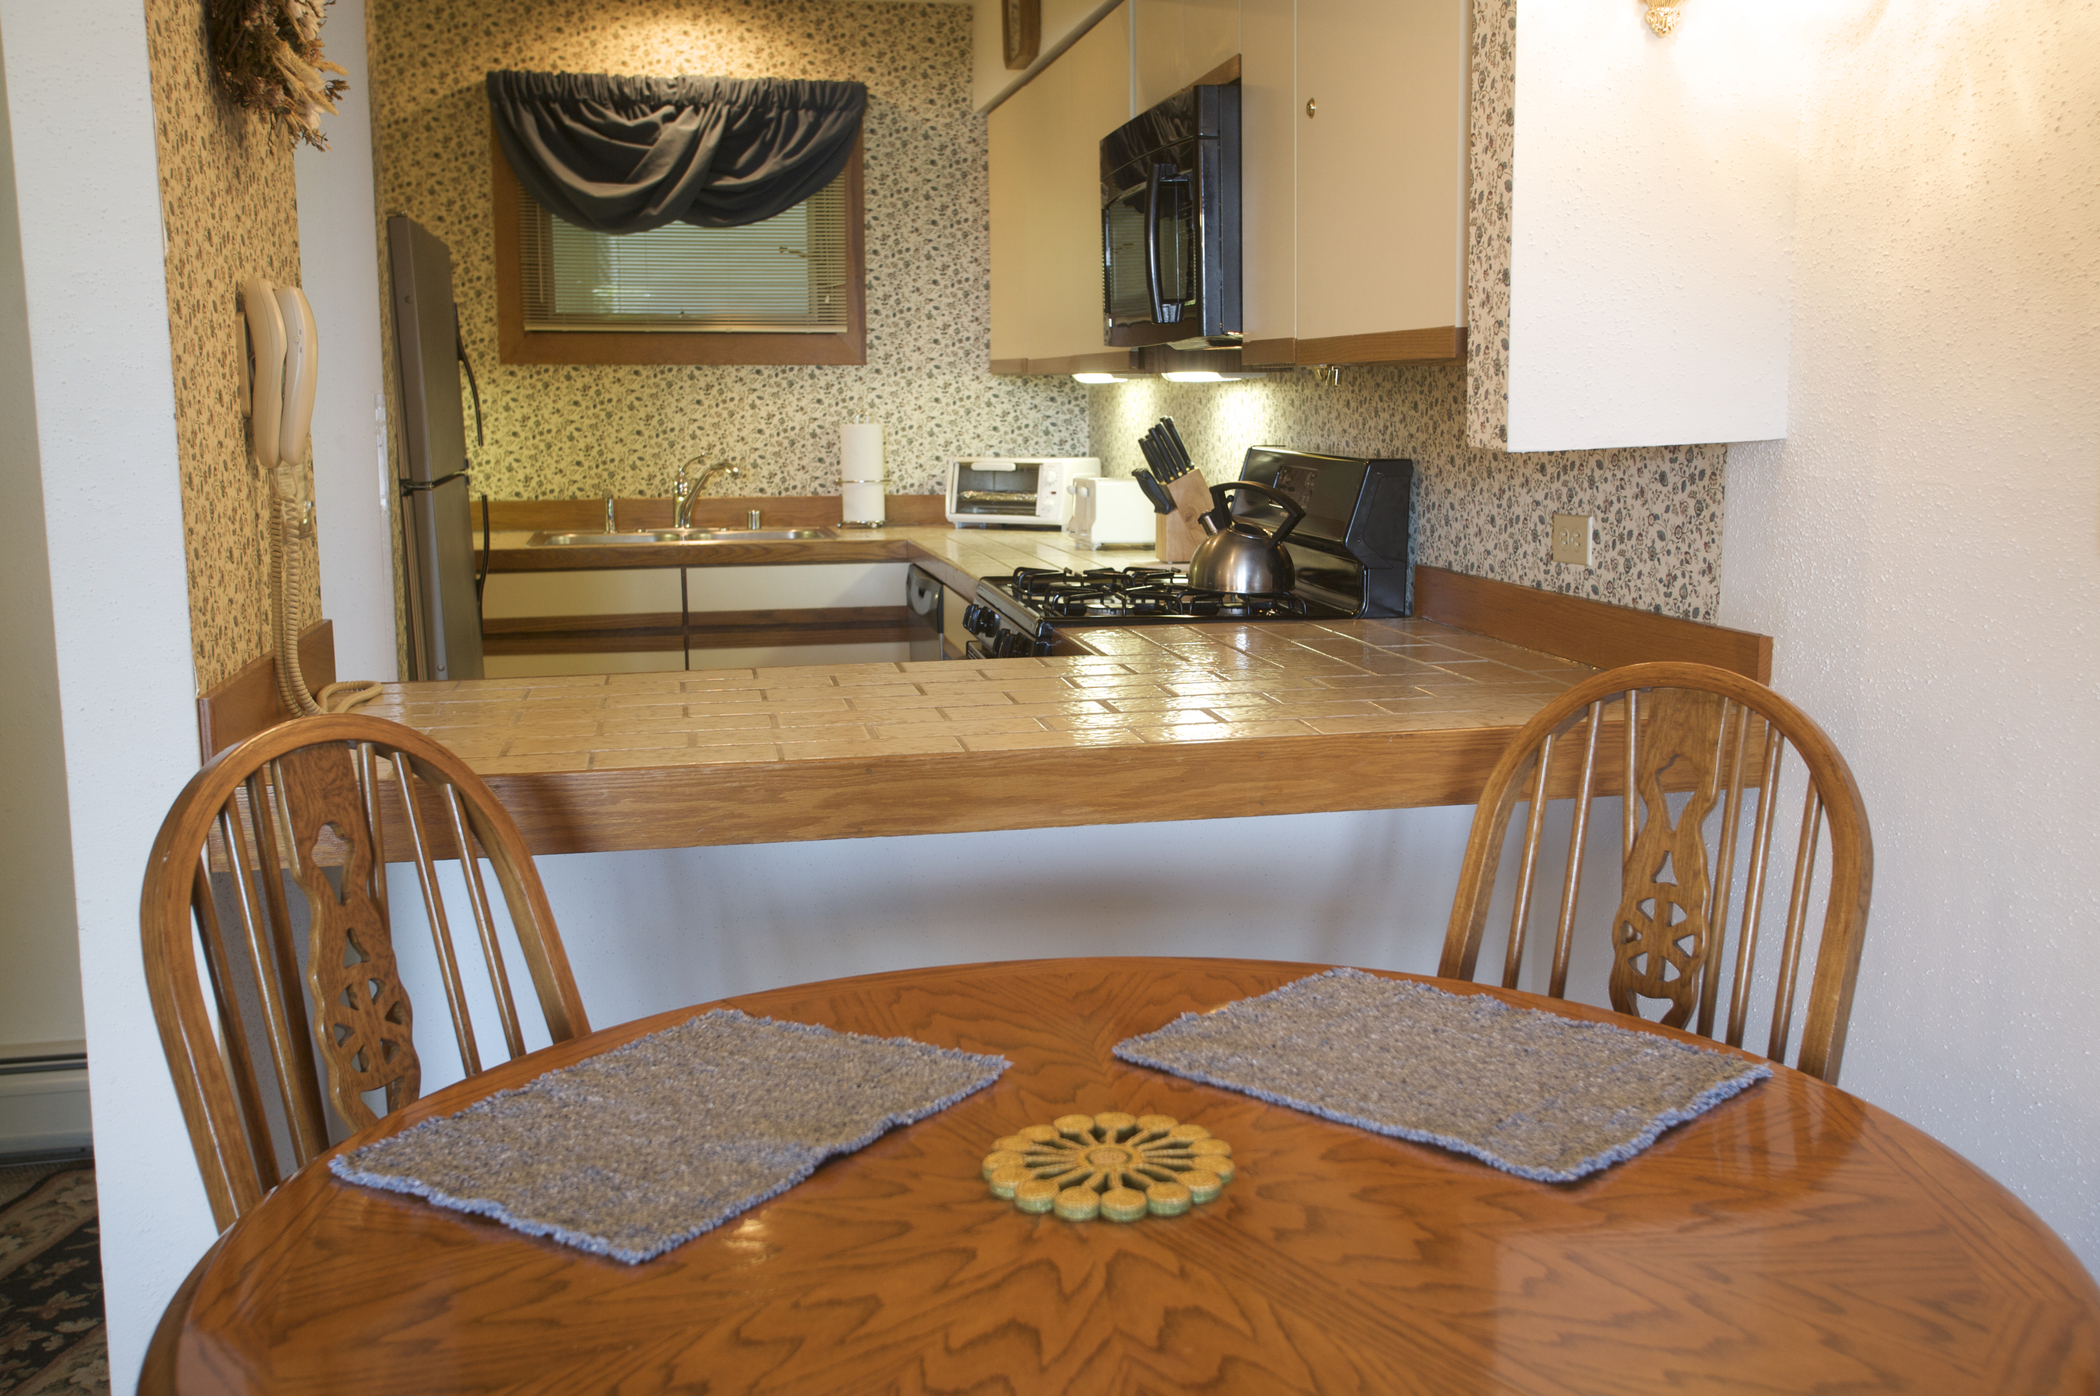 Sunrise Dining Area (Sample - Varies by Unit)